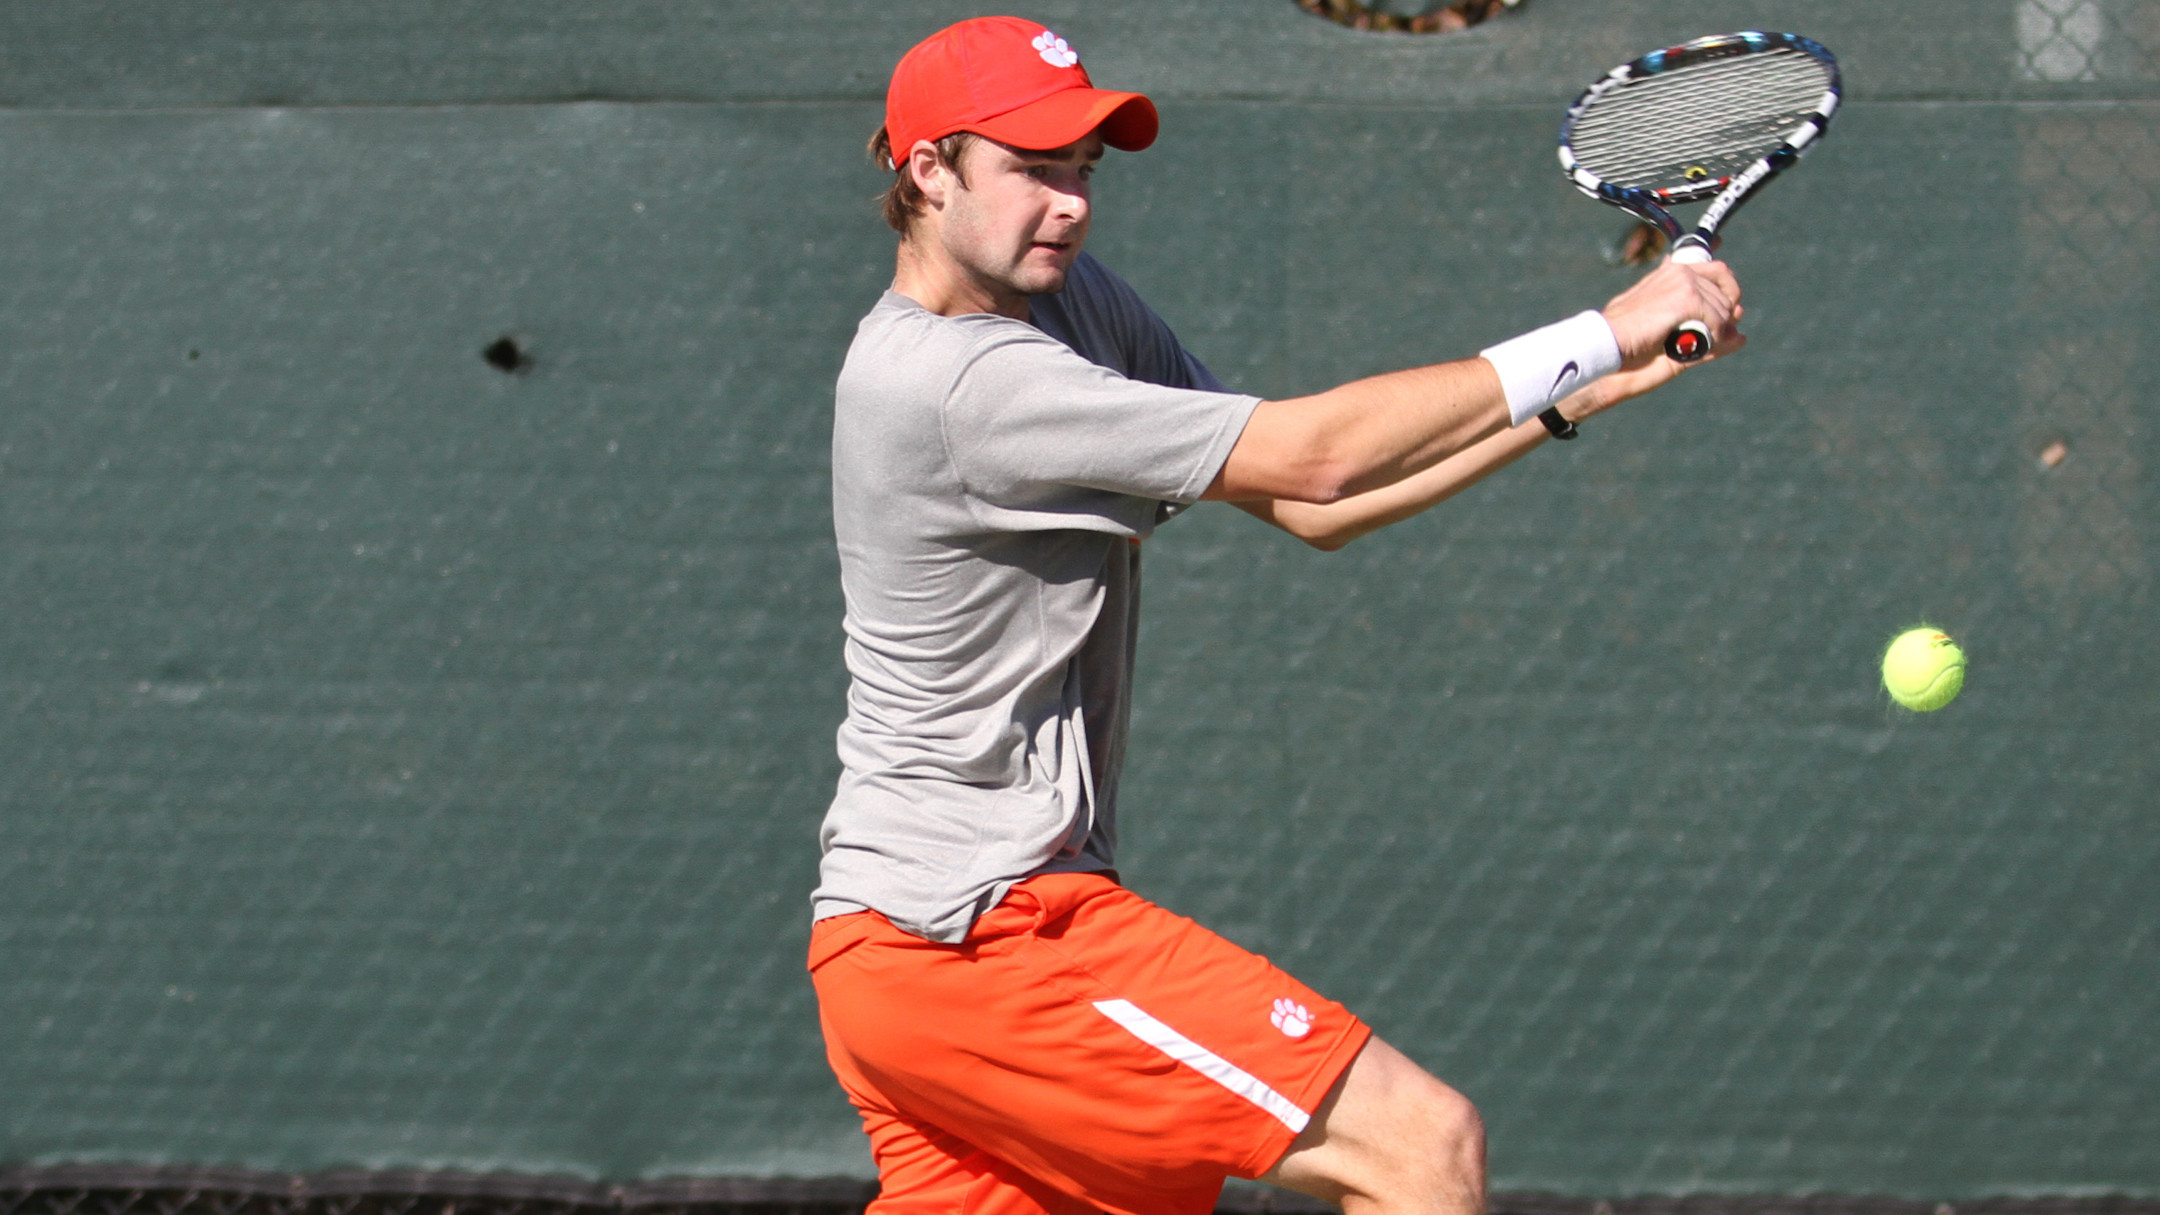 #21 Clemson Defeats #55 Texas Tech 4-2